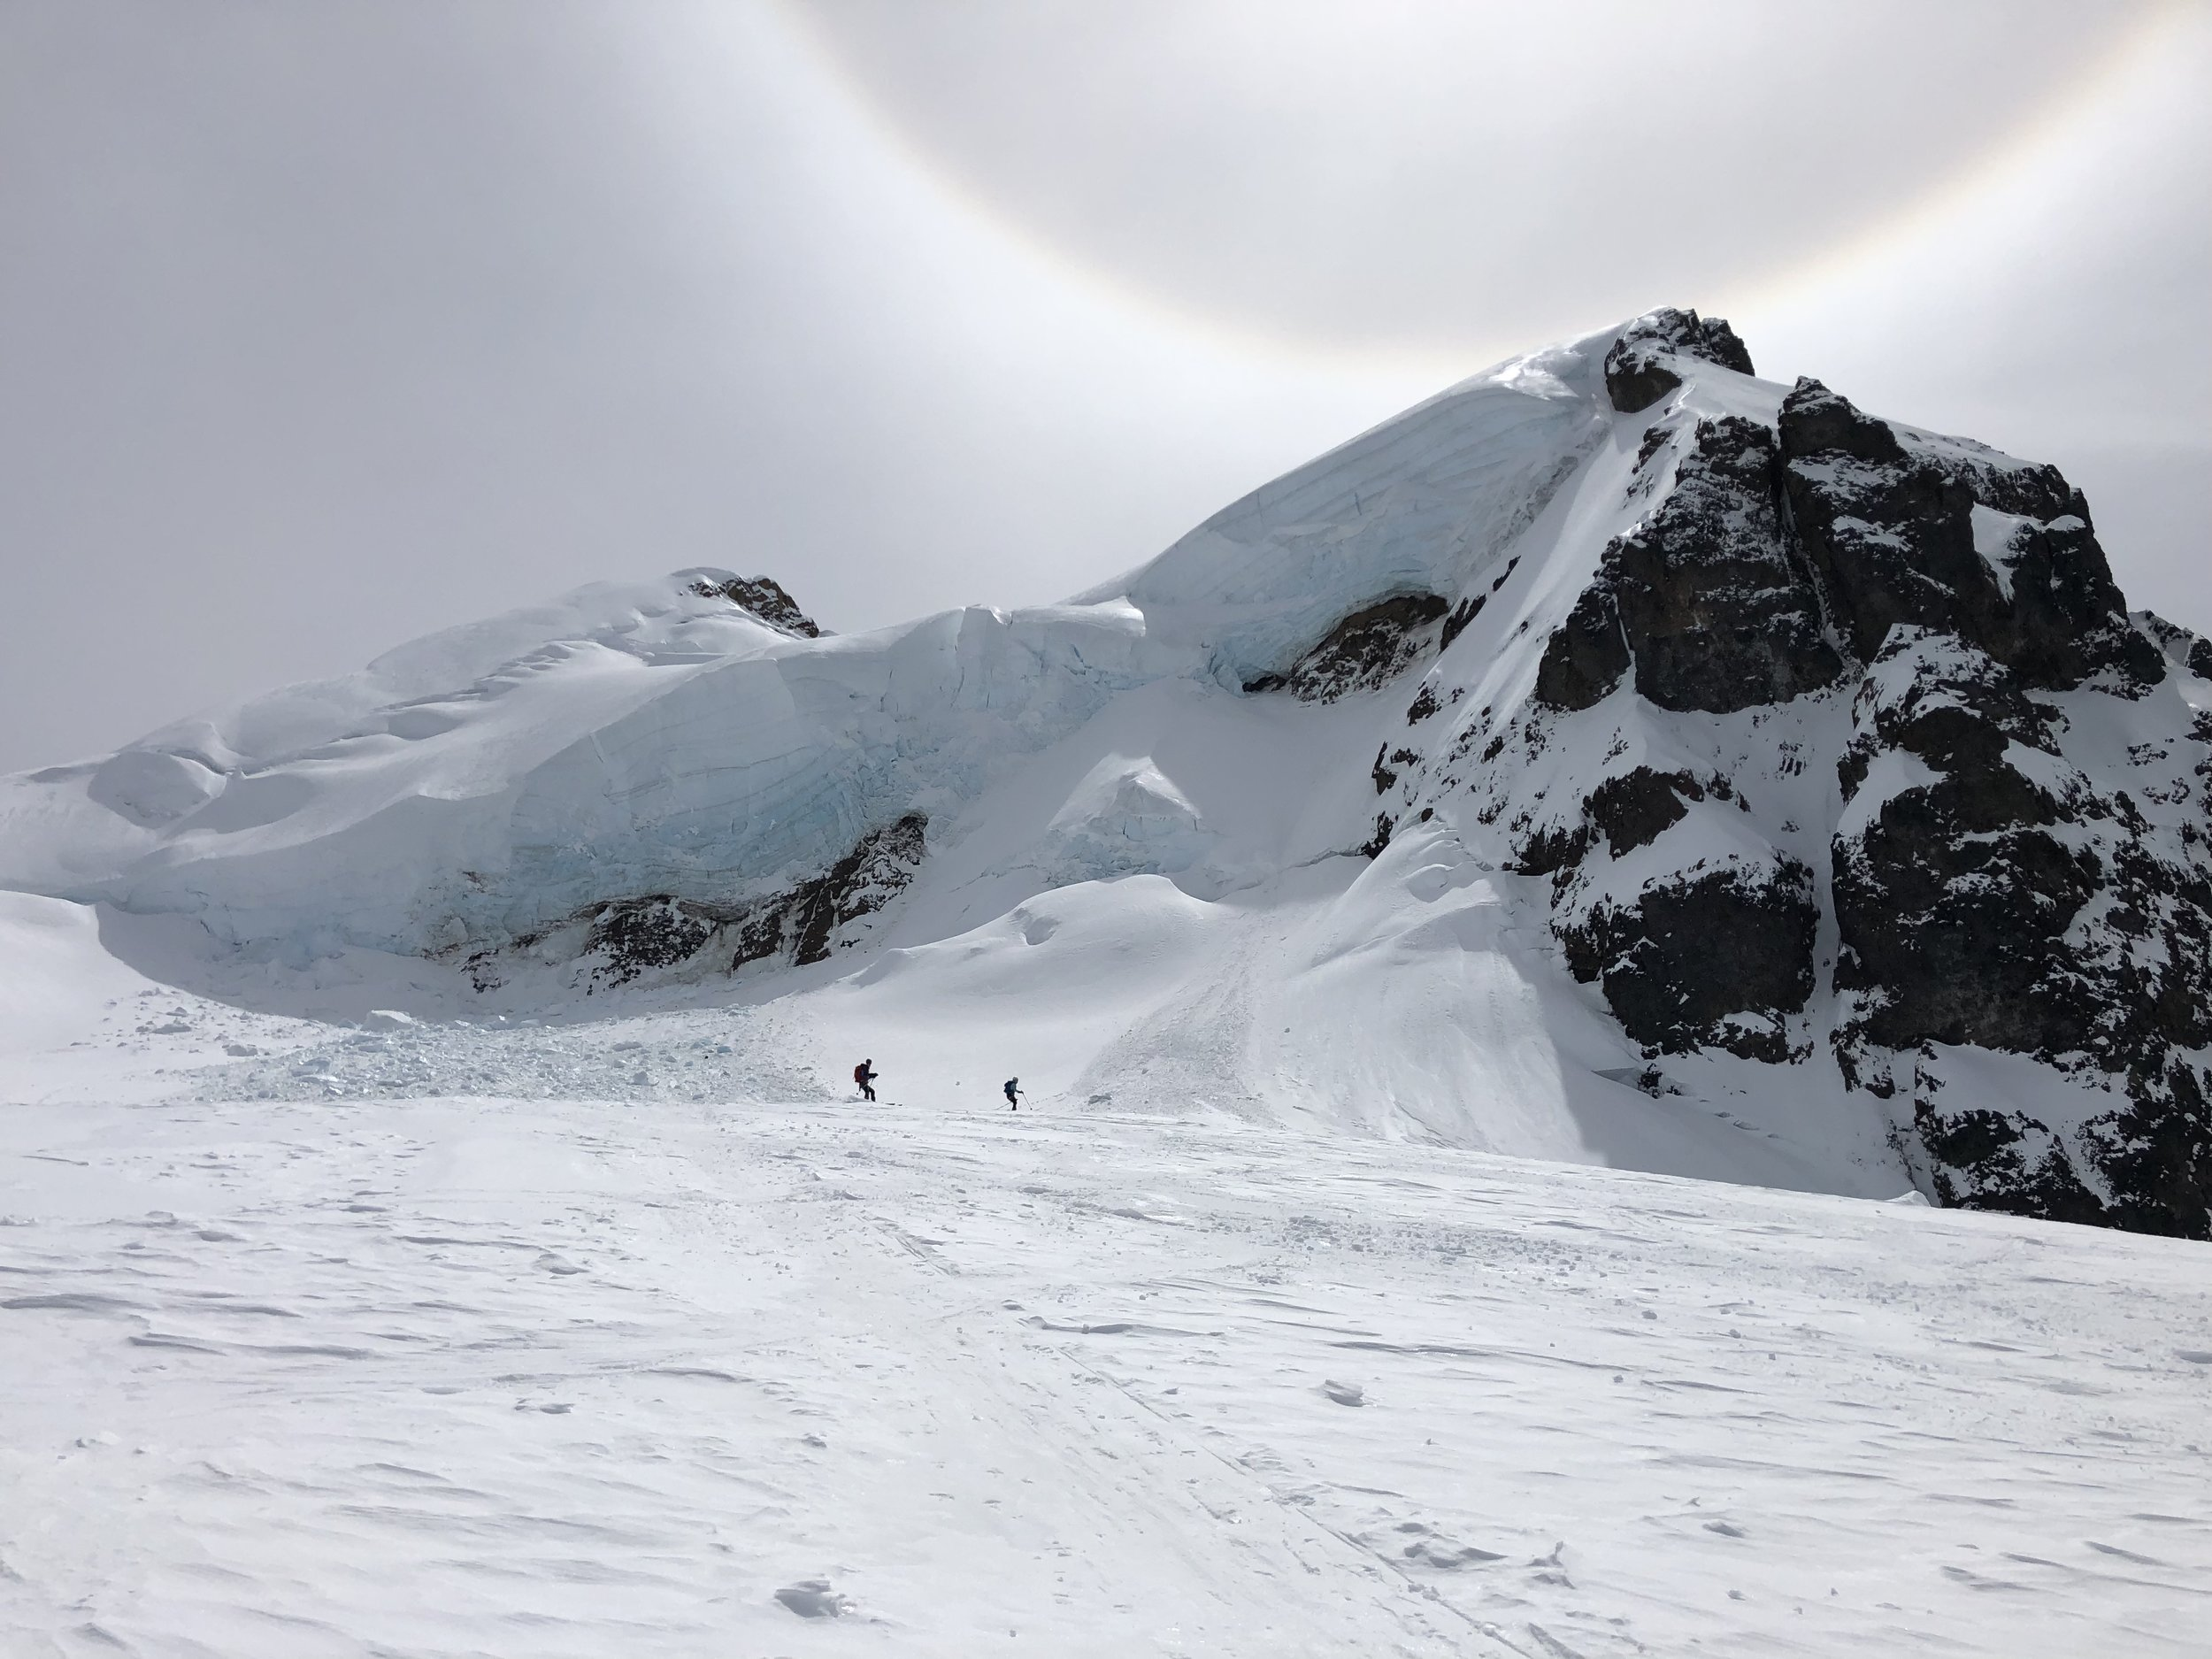 Skiing down beneath Colfax Peak's icefall